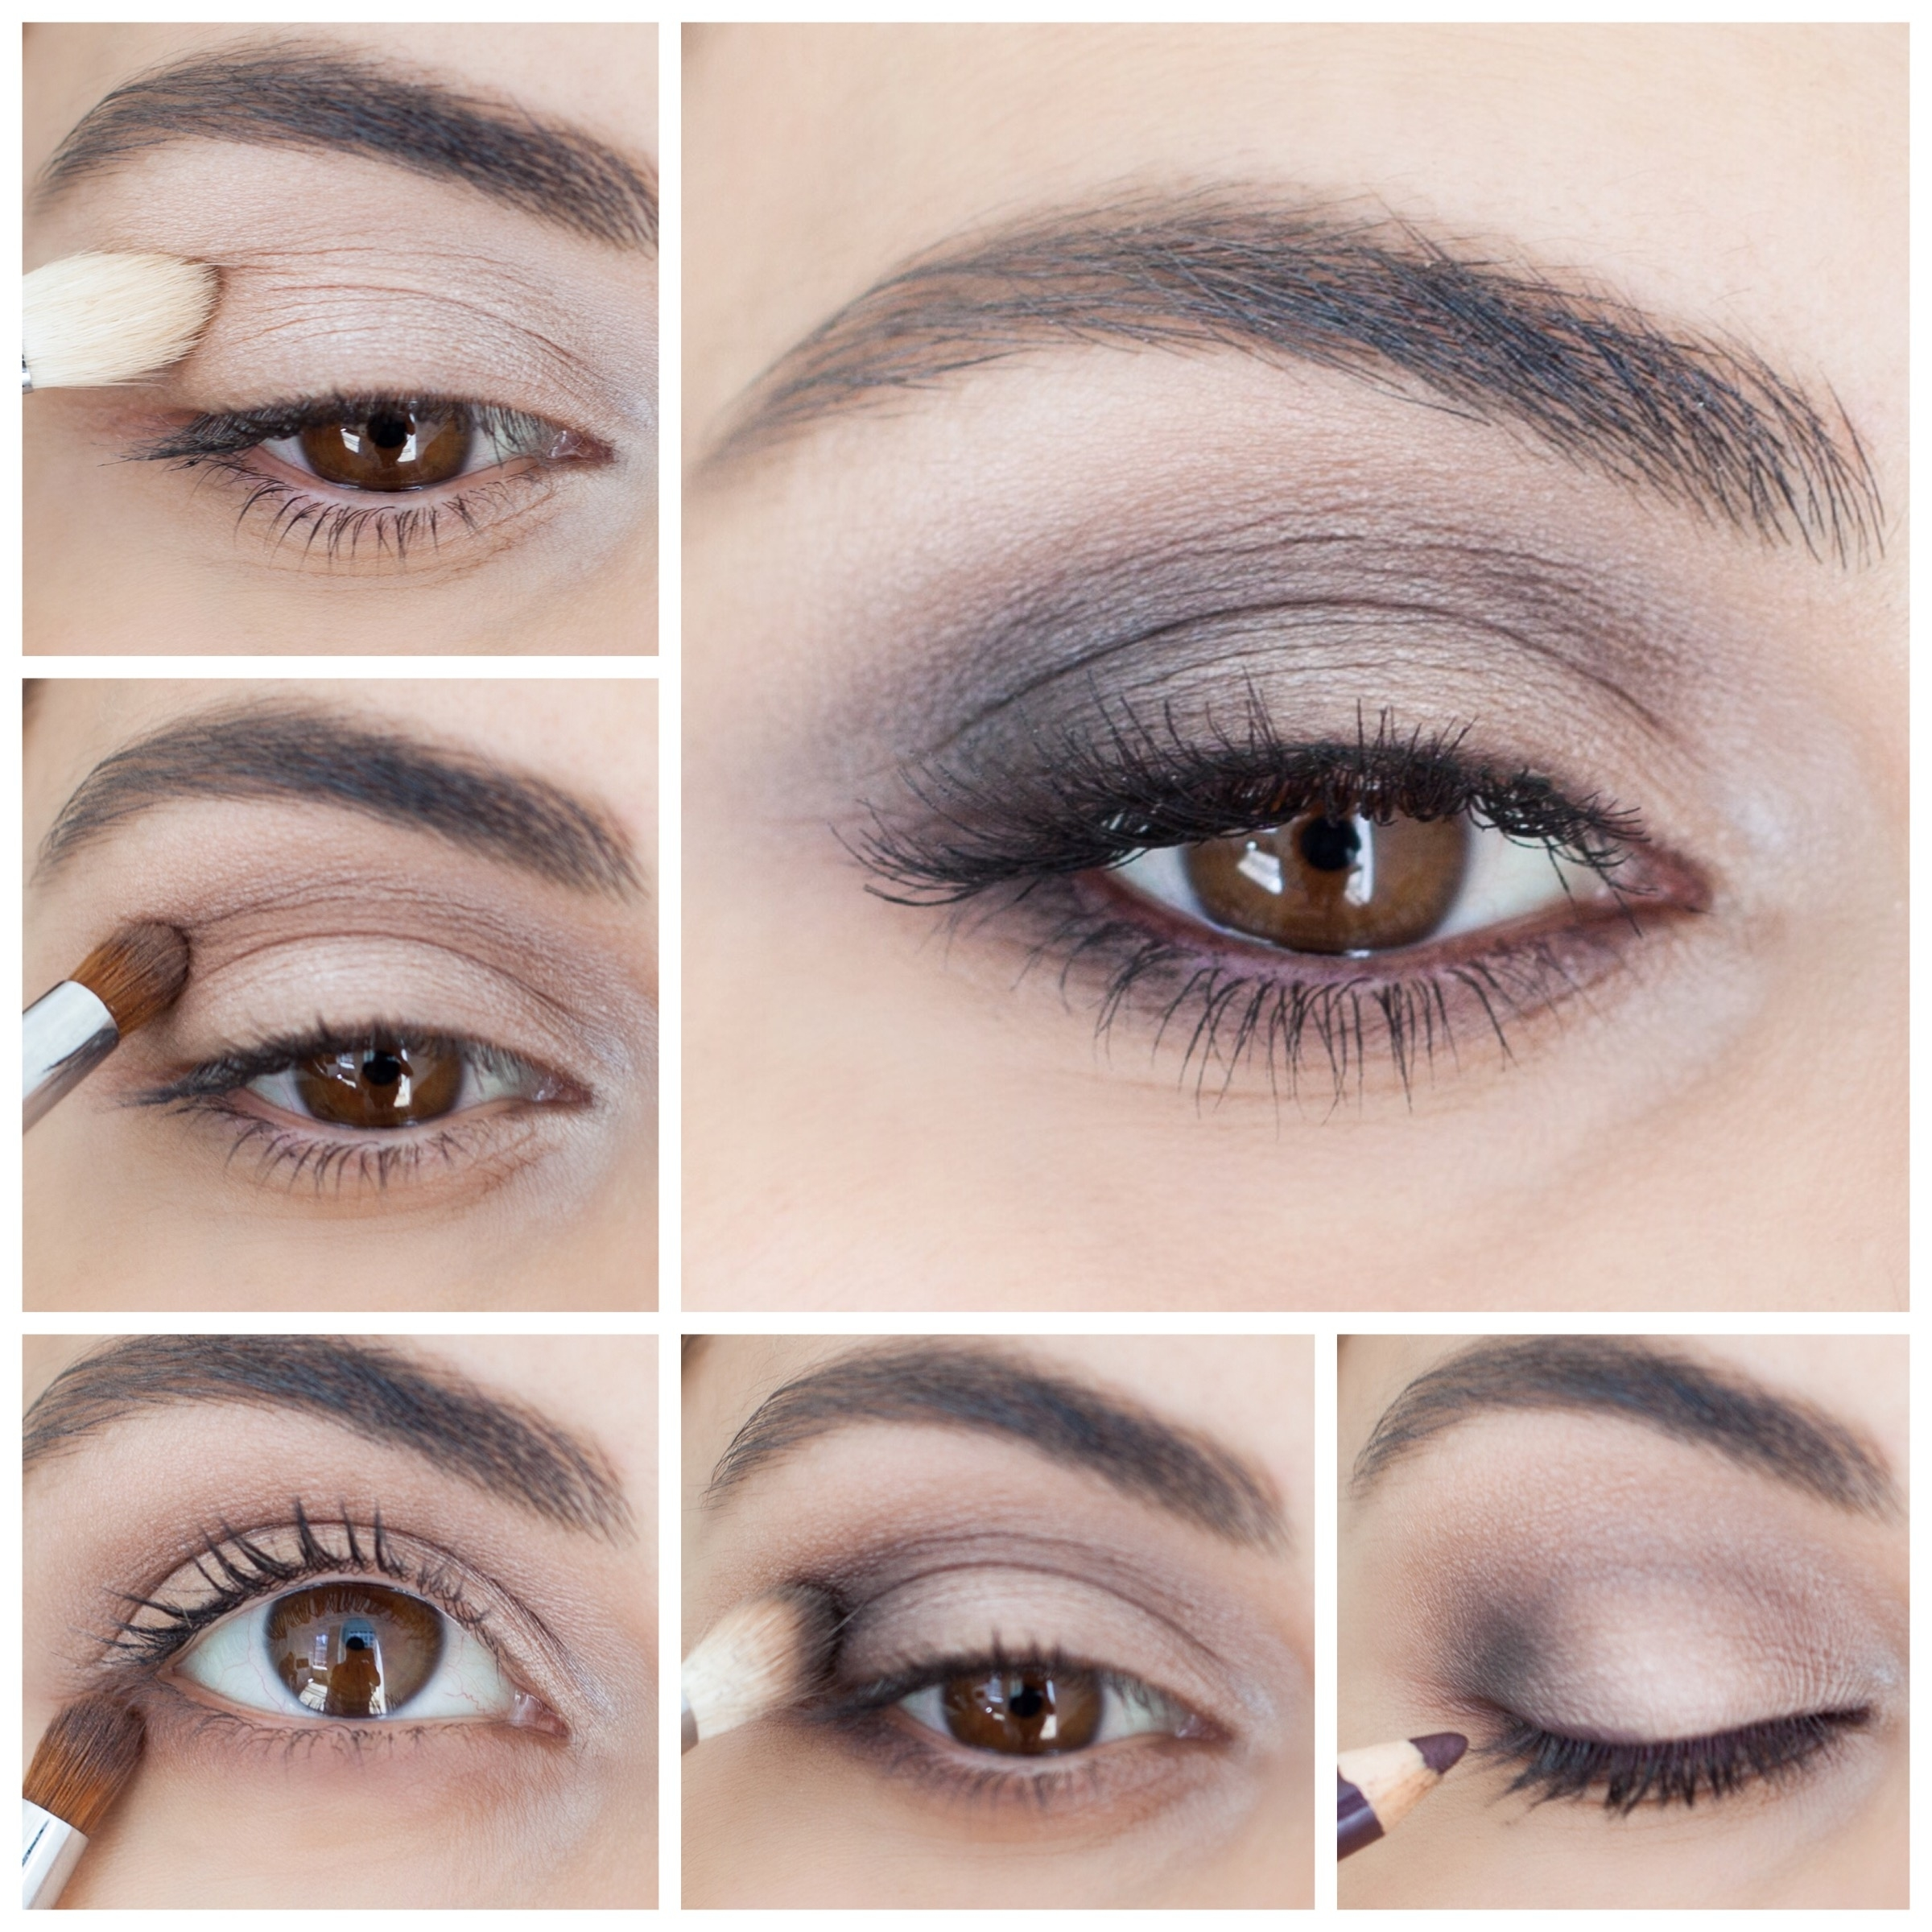 How To: Brown Smokey Eye - Simply Sona pertaining to Smoky Eye Makeup Steps With Pictures